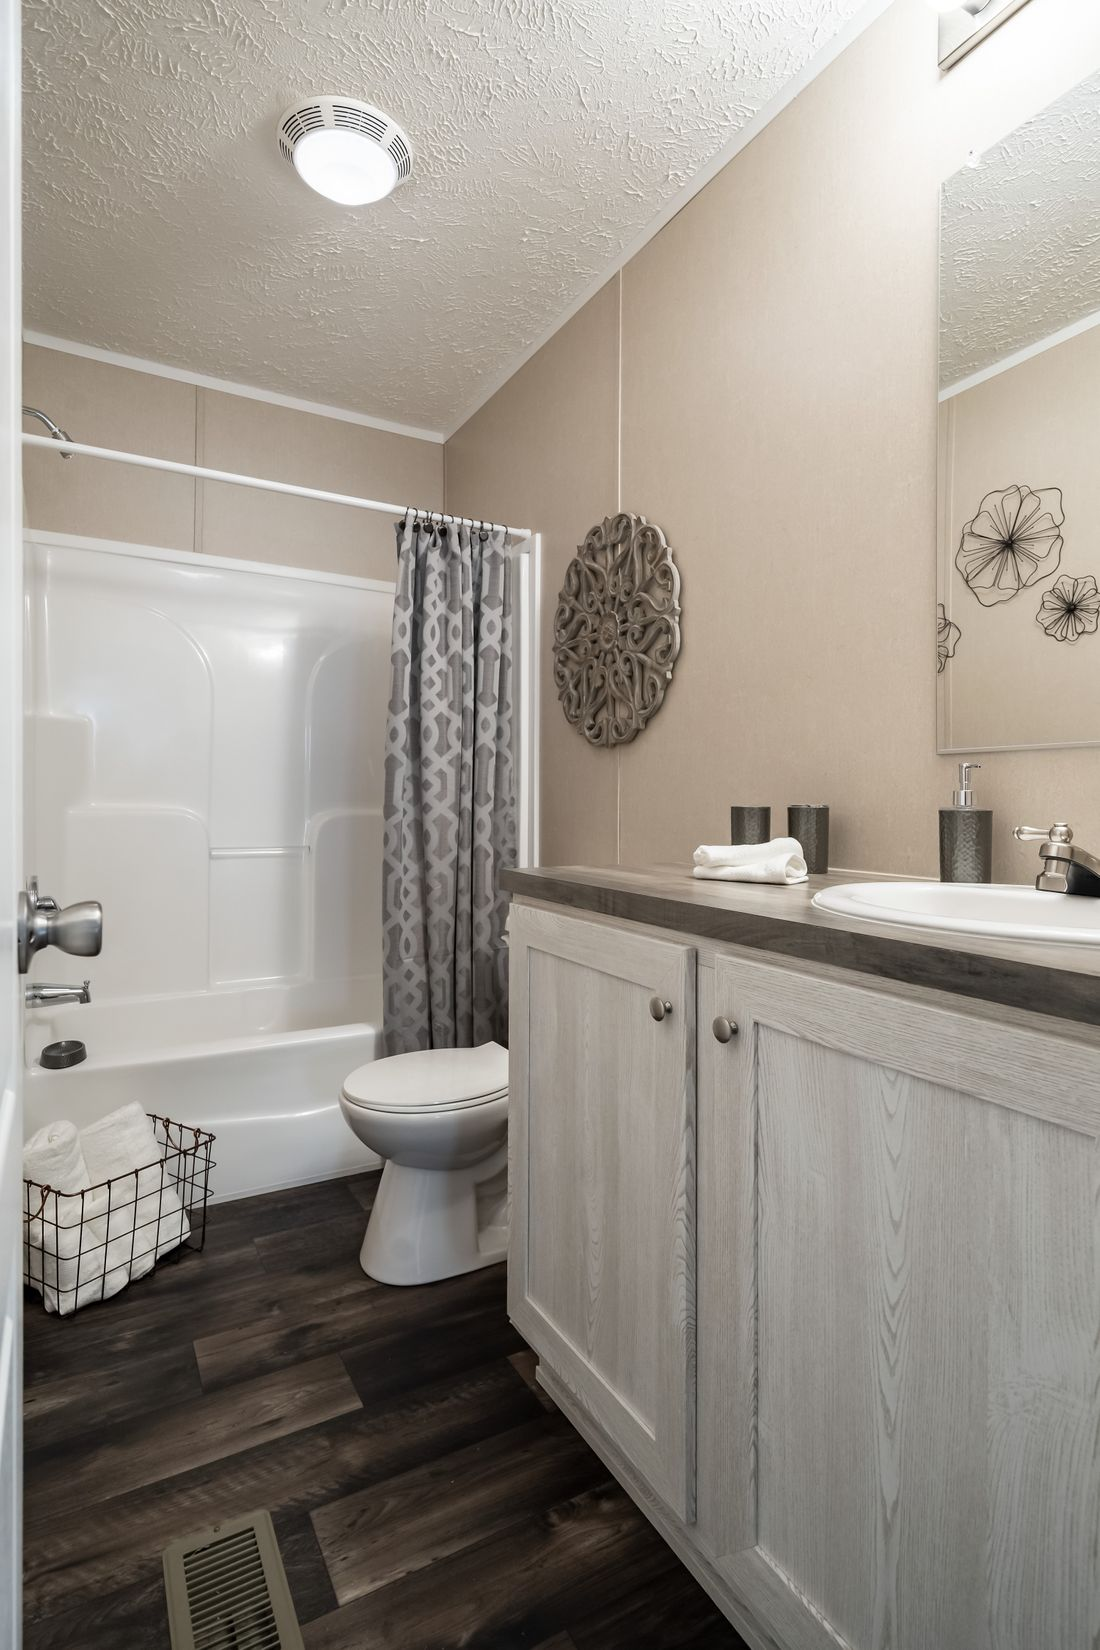 The ULTRA PRO 68 Guest Bathroom. This Manufactured Mobile Home features 4 bedrooms and 2 baths.